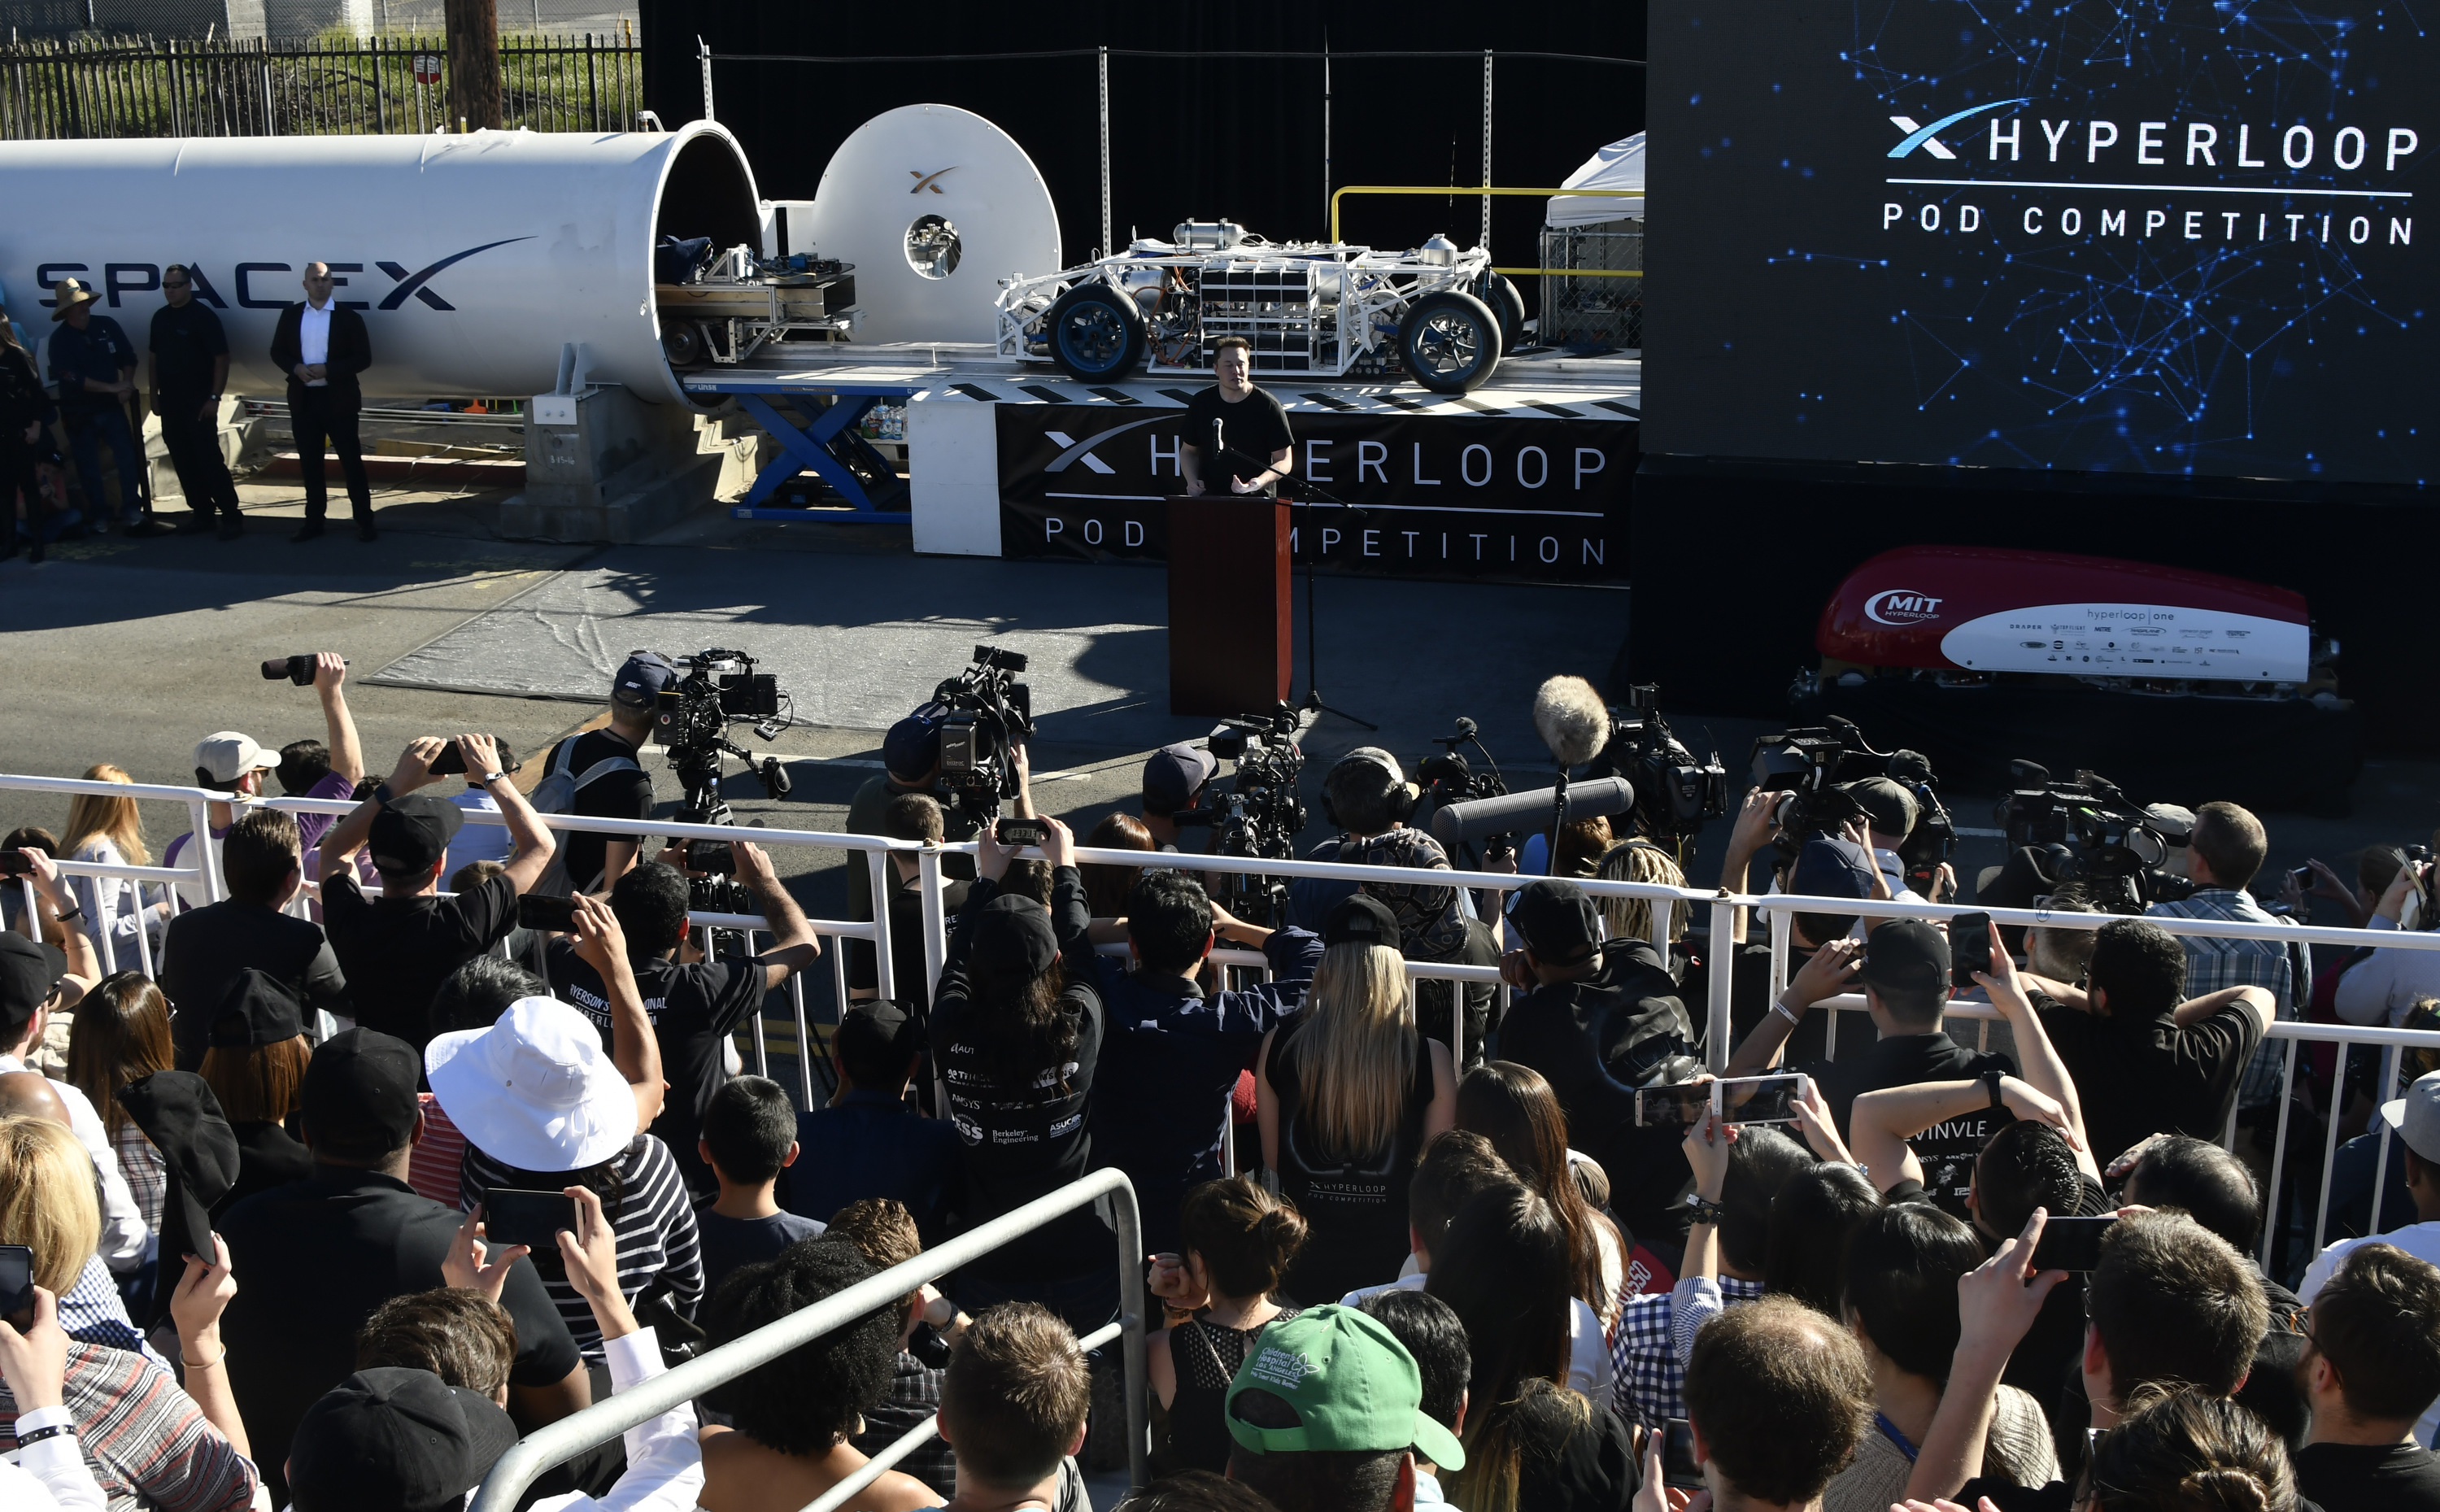 US-TECHNOLOGY-SPACE X-HYPERLOOP